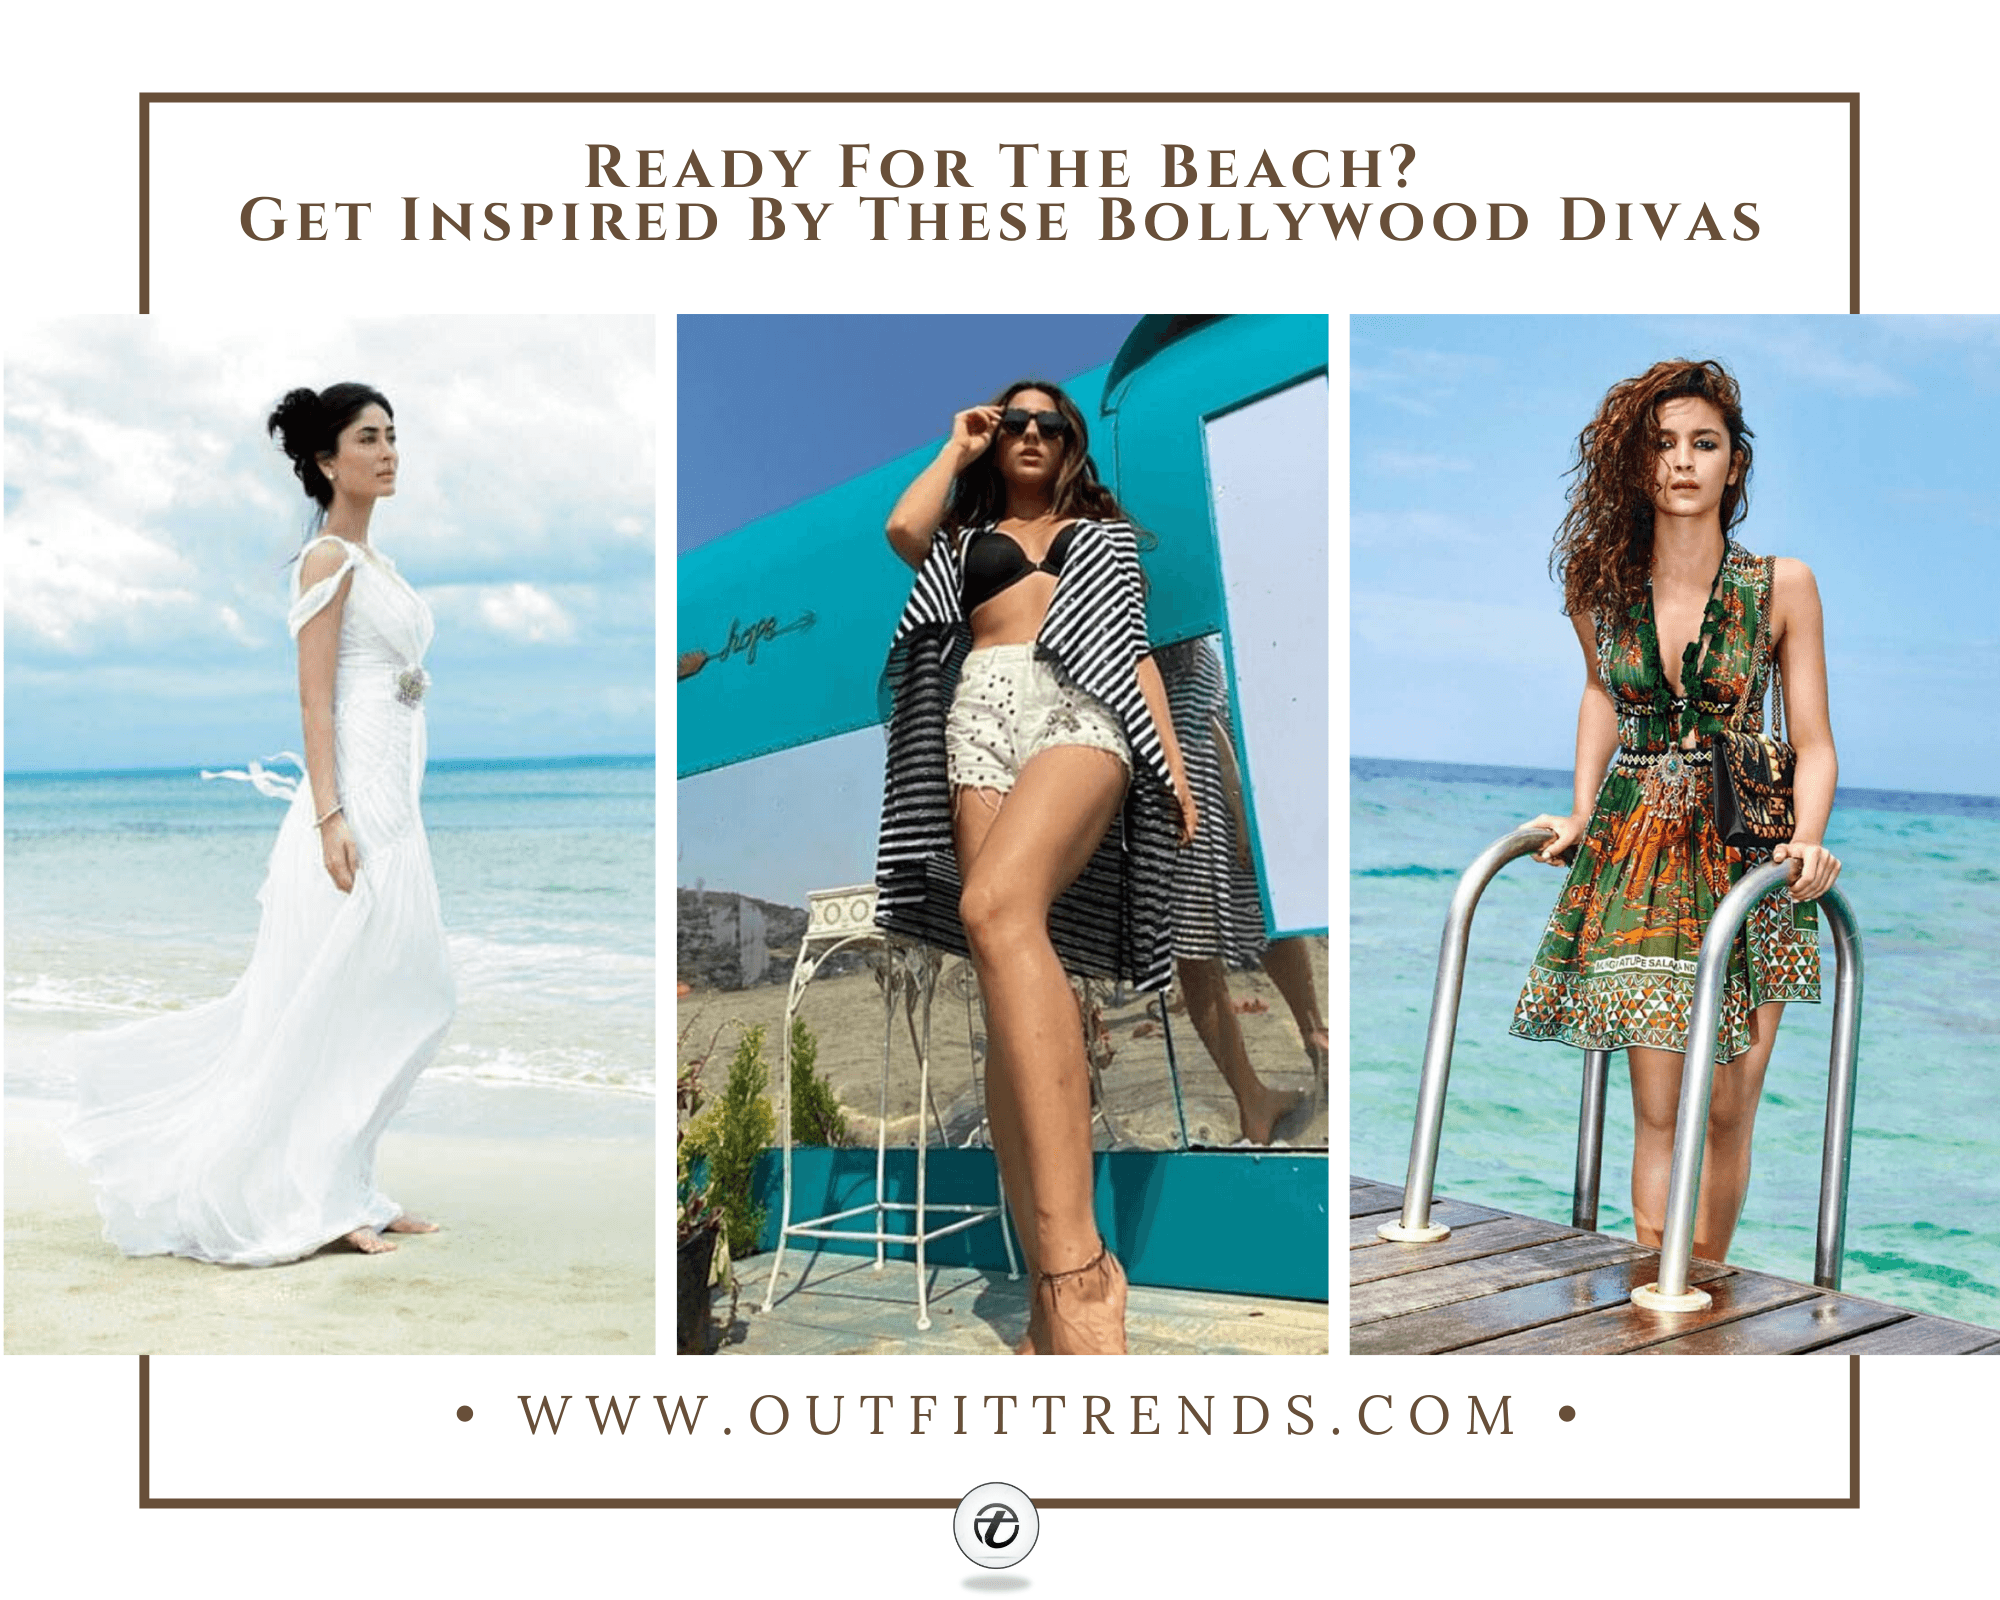 40 Bollywood Celebrity Beach Outfits That You'll Love